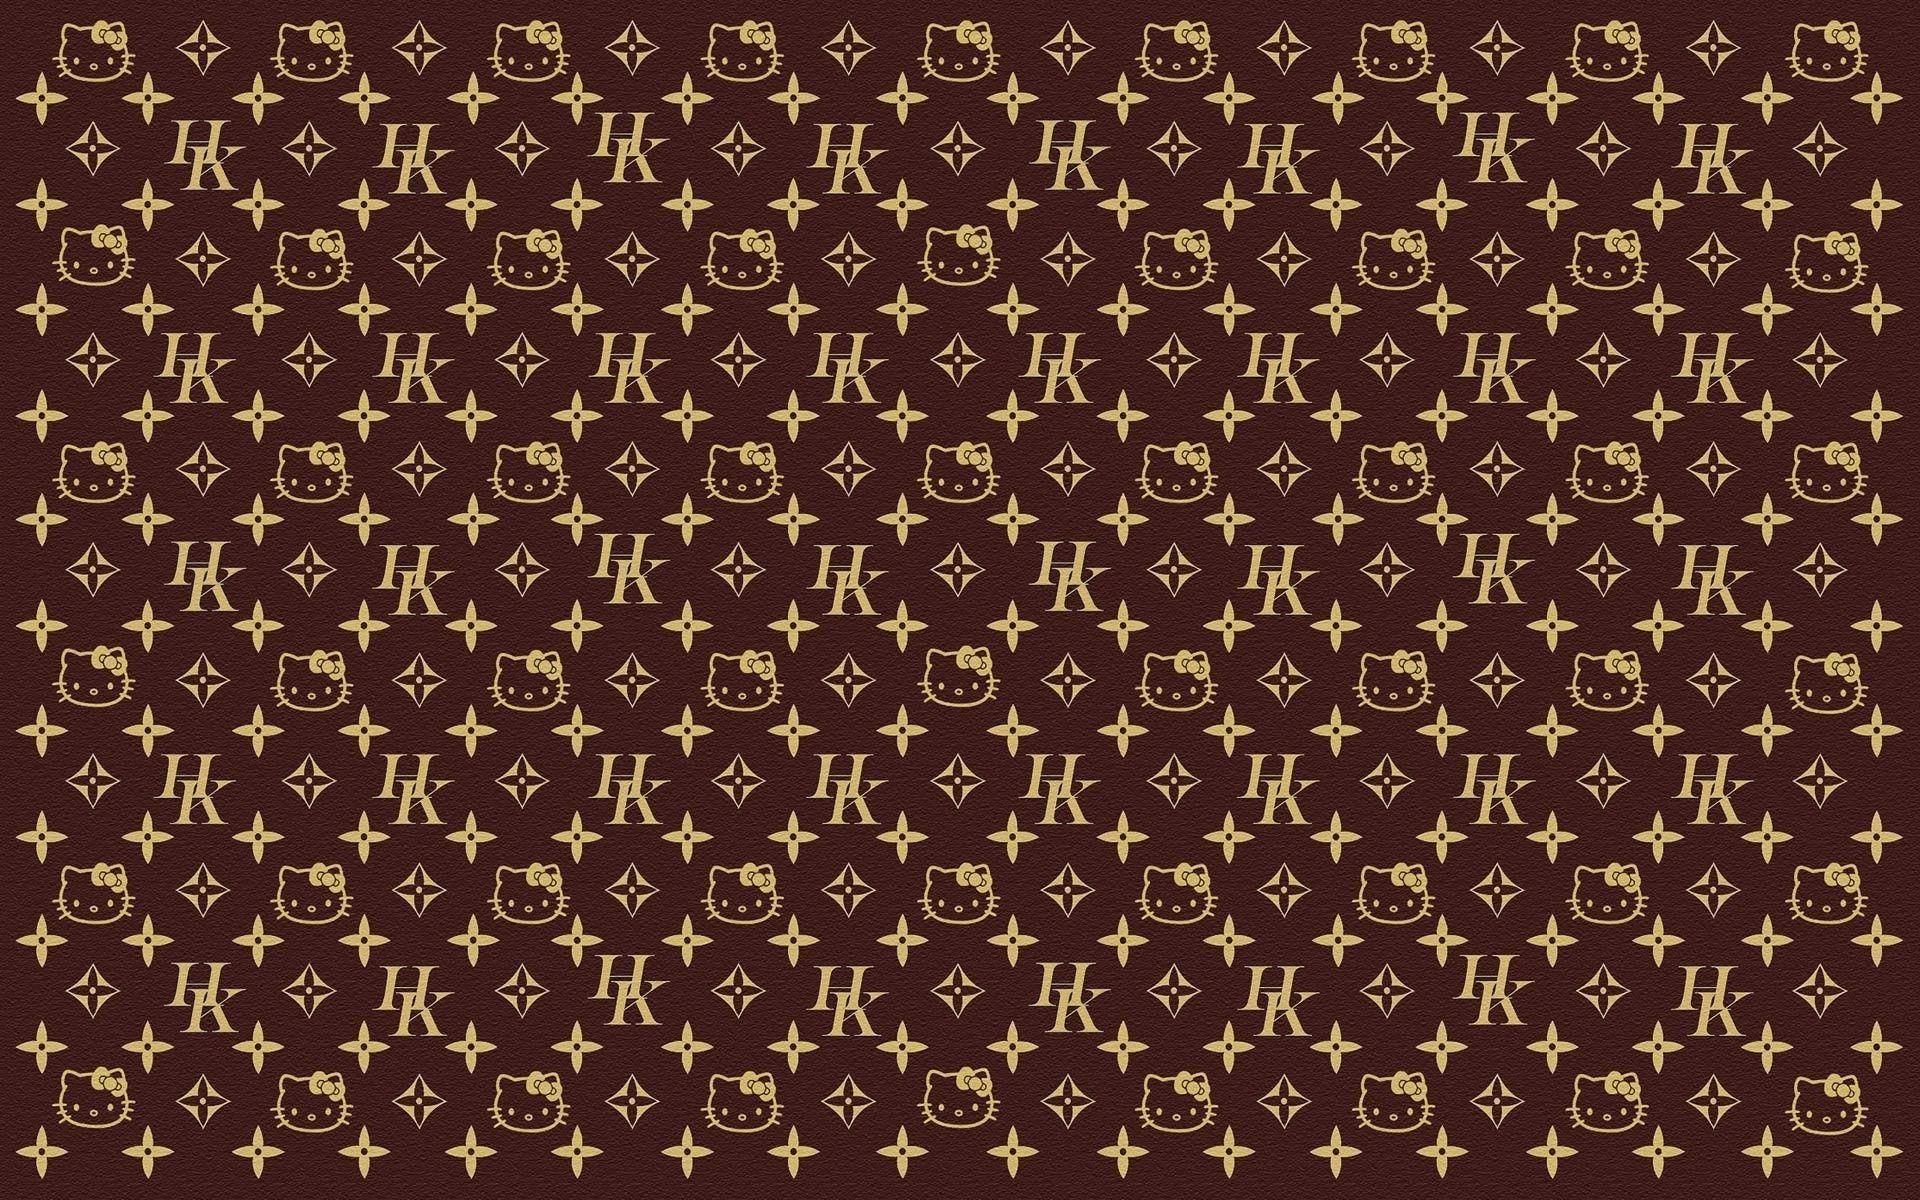 louis vuitton backgrounds wallpaper cave. Black Bedroom Furniture Sets. Home Design Ideas